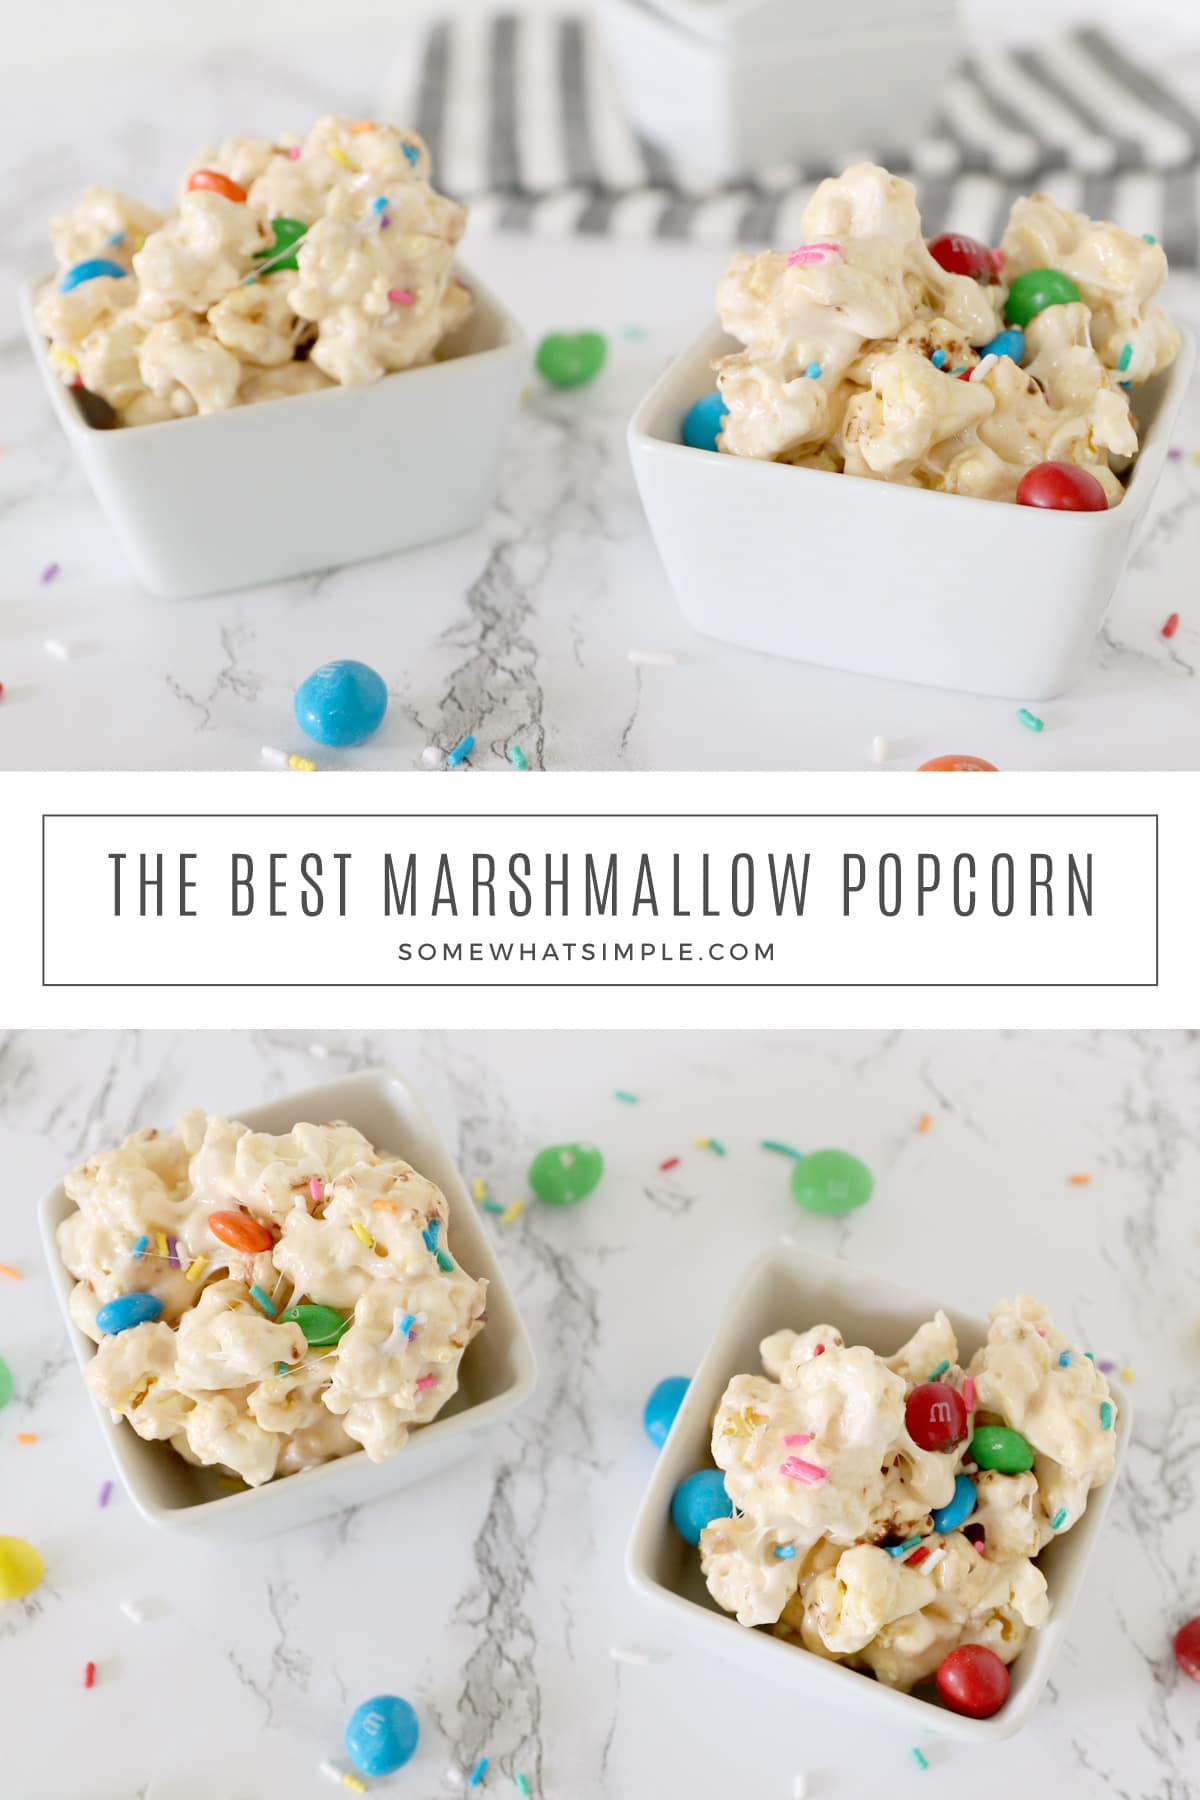 Marshmallow popcorn is easy to make and so delicious! This simple little treat is salty and sweet, and SO ADDICTING! (Don't say I didn't warn you!) This homemade marshmallow popcorn is an easy and delicious gourmet popcorn recipe that your family is guaranteed to love. via @somewhatsimple